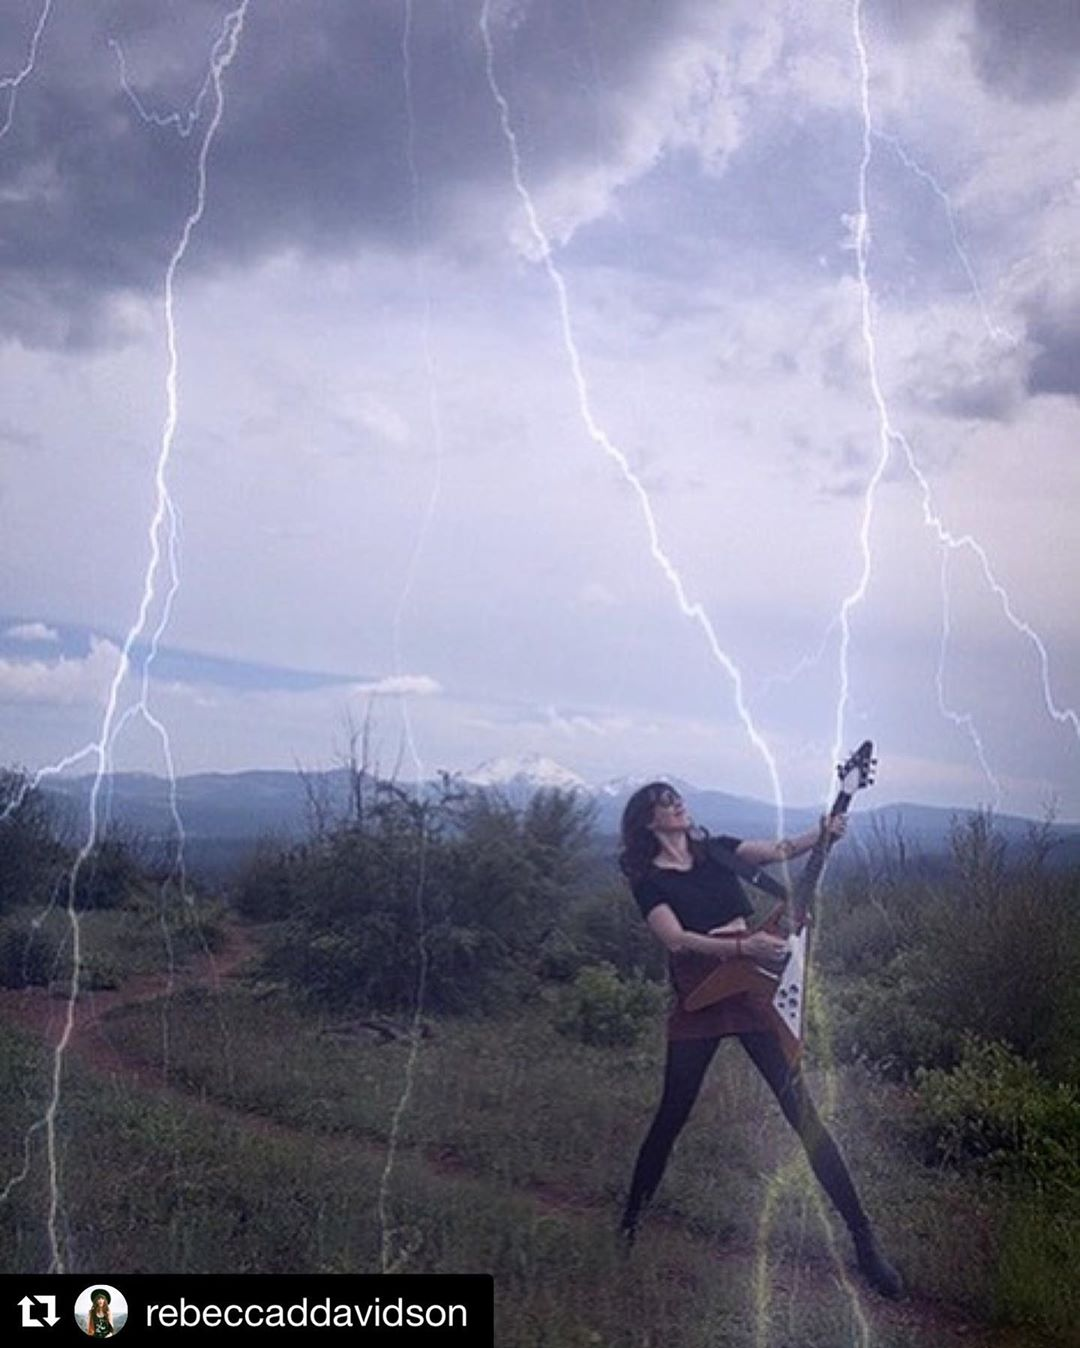 @rebeccaddavidson getting inspired @lassenvolcanicnational ??????#godofthunder?? #flyingv @gibsonguitar @spindriftwest ••• TONIGHT IN LA @theechola with @thedeadmeadow @hallowgallows ••• we'll have #songsfromtheancientage ON VINYL! ???????????????